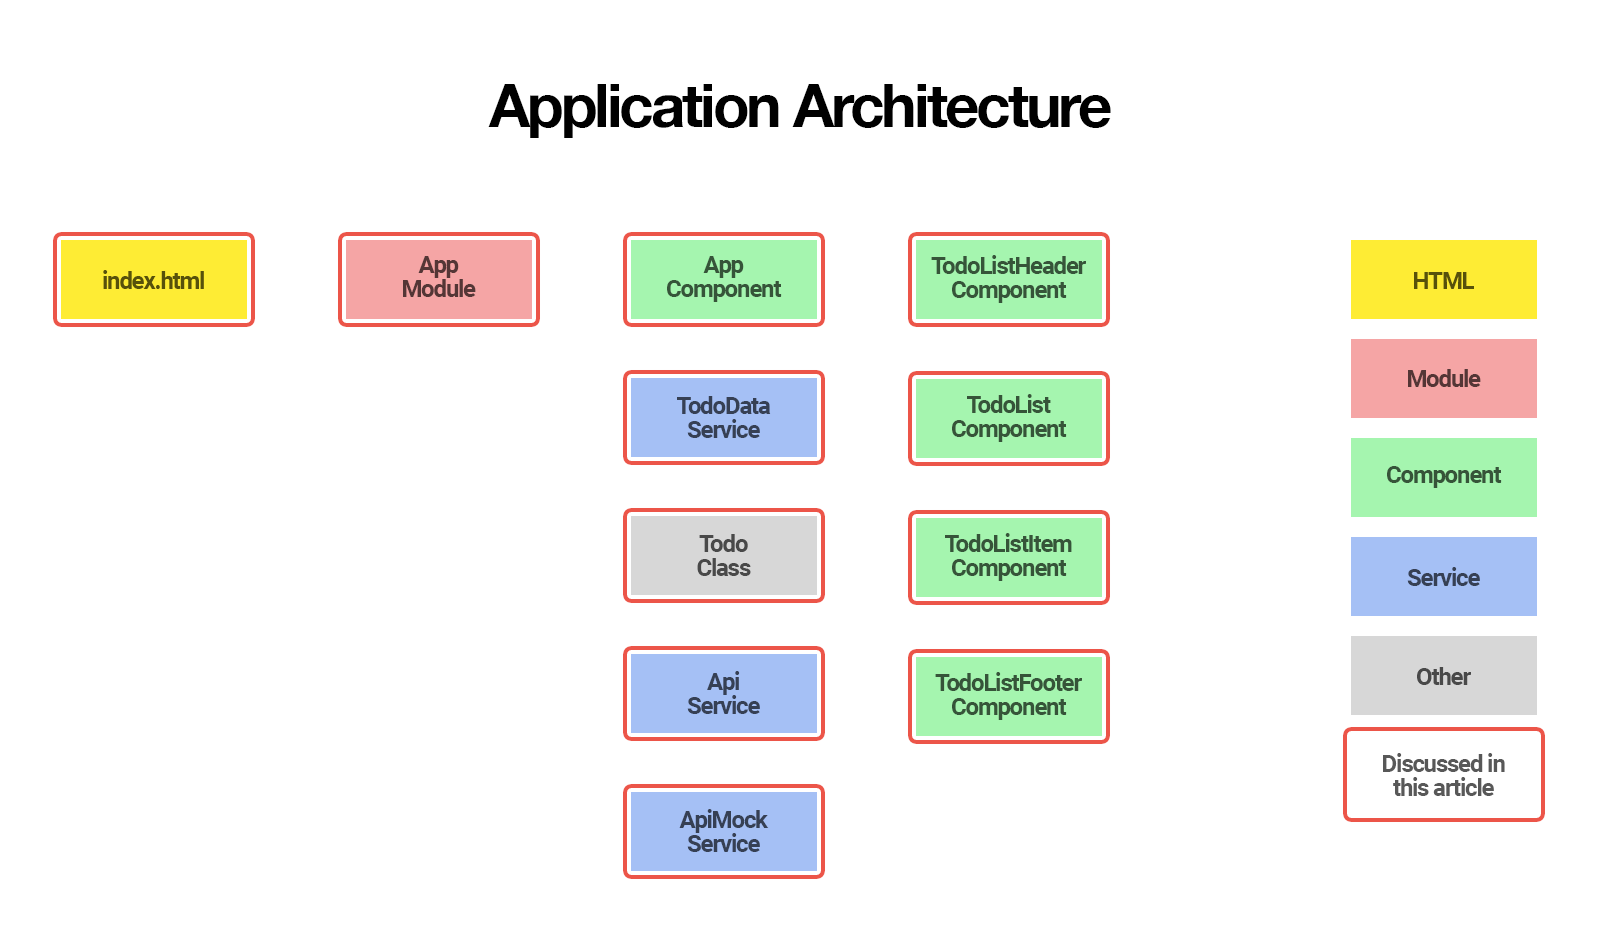 Angular Router: Application Architecture